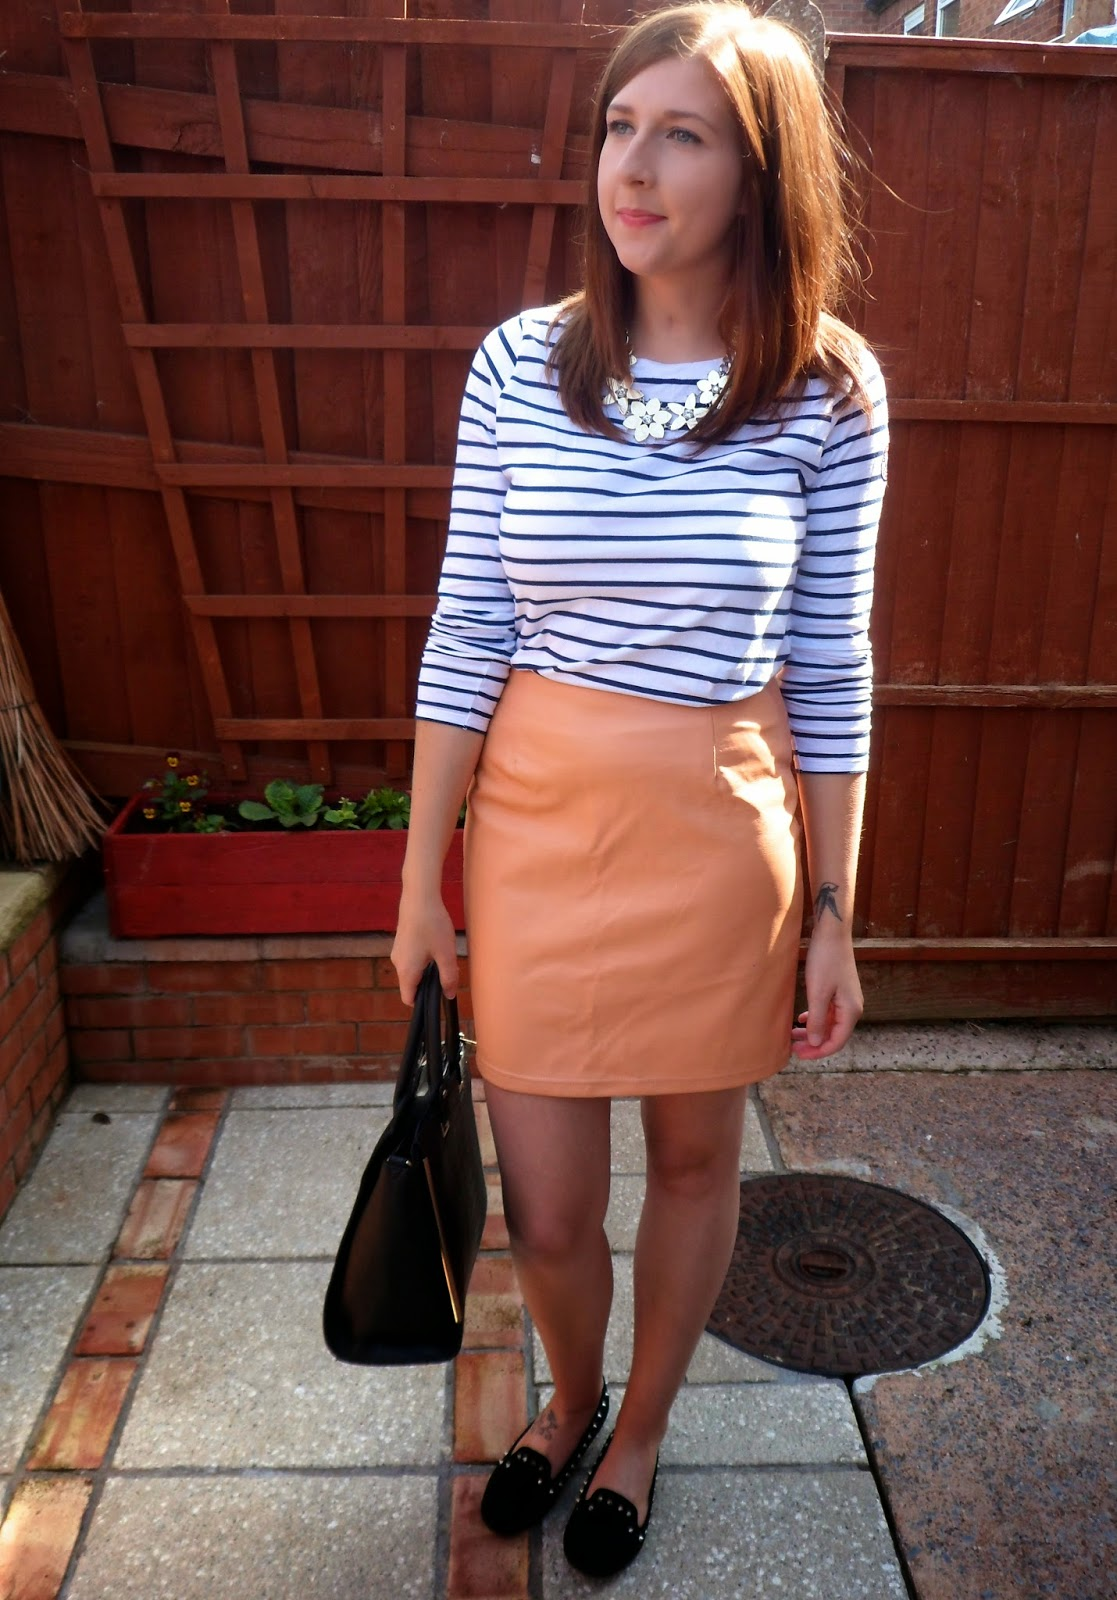 asseenonme, blackbag, breton, casuallook, fashionbloggers, fbloggers, feminine, ootd, outfitoftheday, primark, skirt, puskirt stripedtop, tkmaxx, newlook, whatibought, whatimwearing, wiw